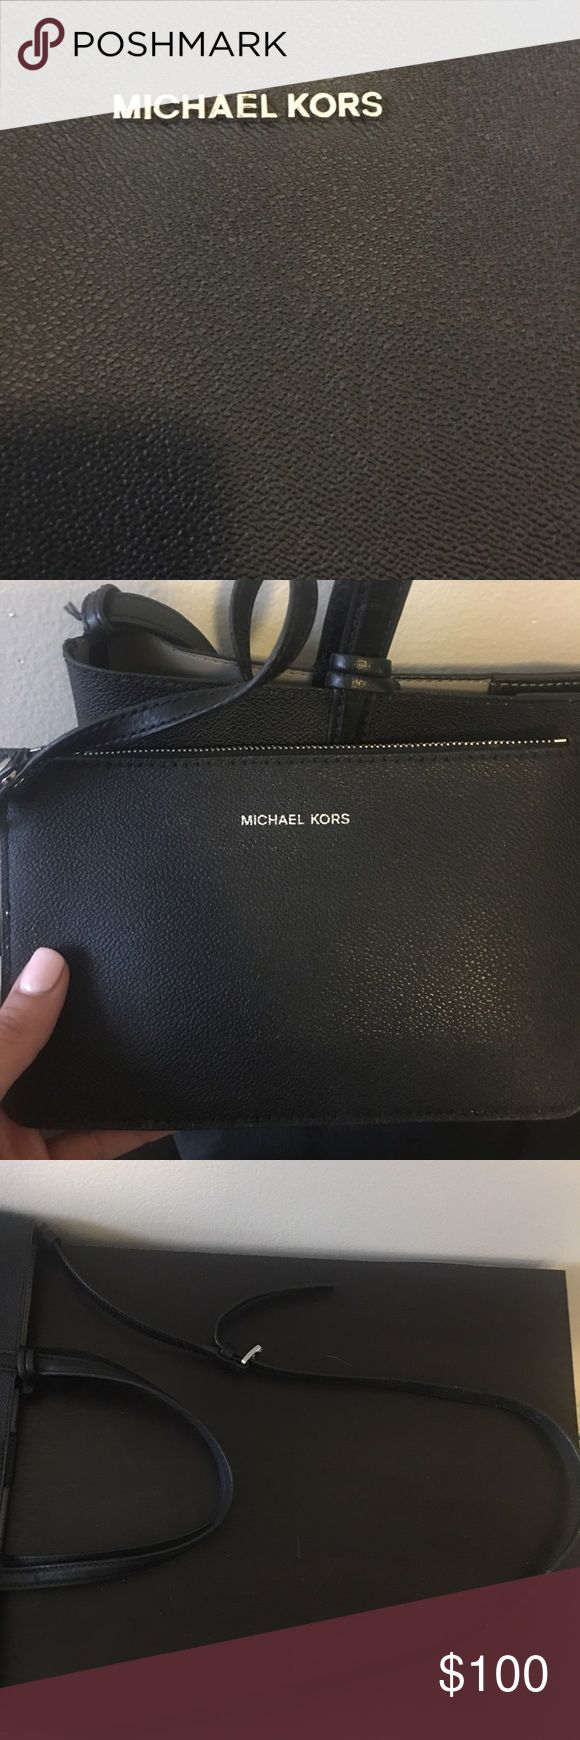 Michael Kors Black bag Michael Kors Black bag Combine orders for a discount. Message me with any questions. Michael Kors Bags Totes